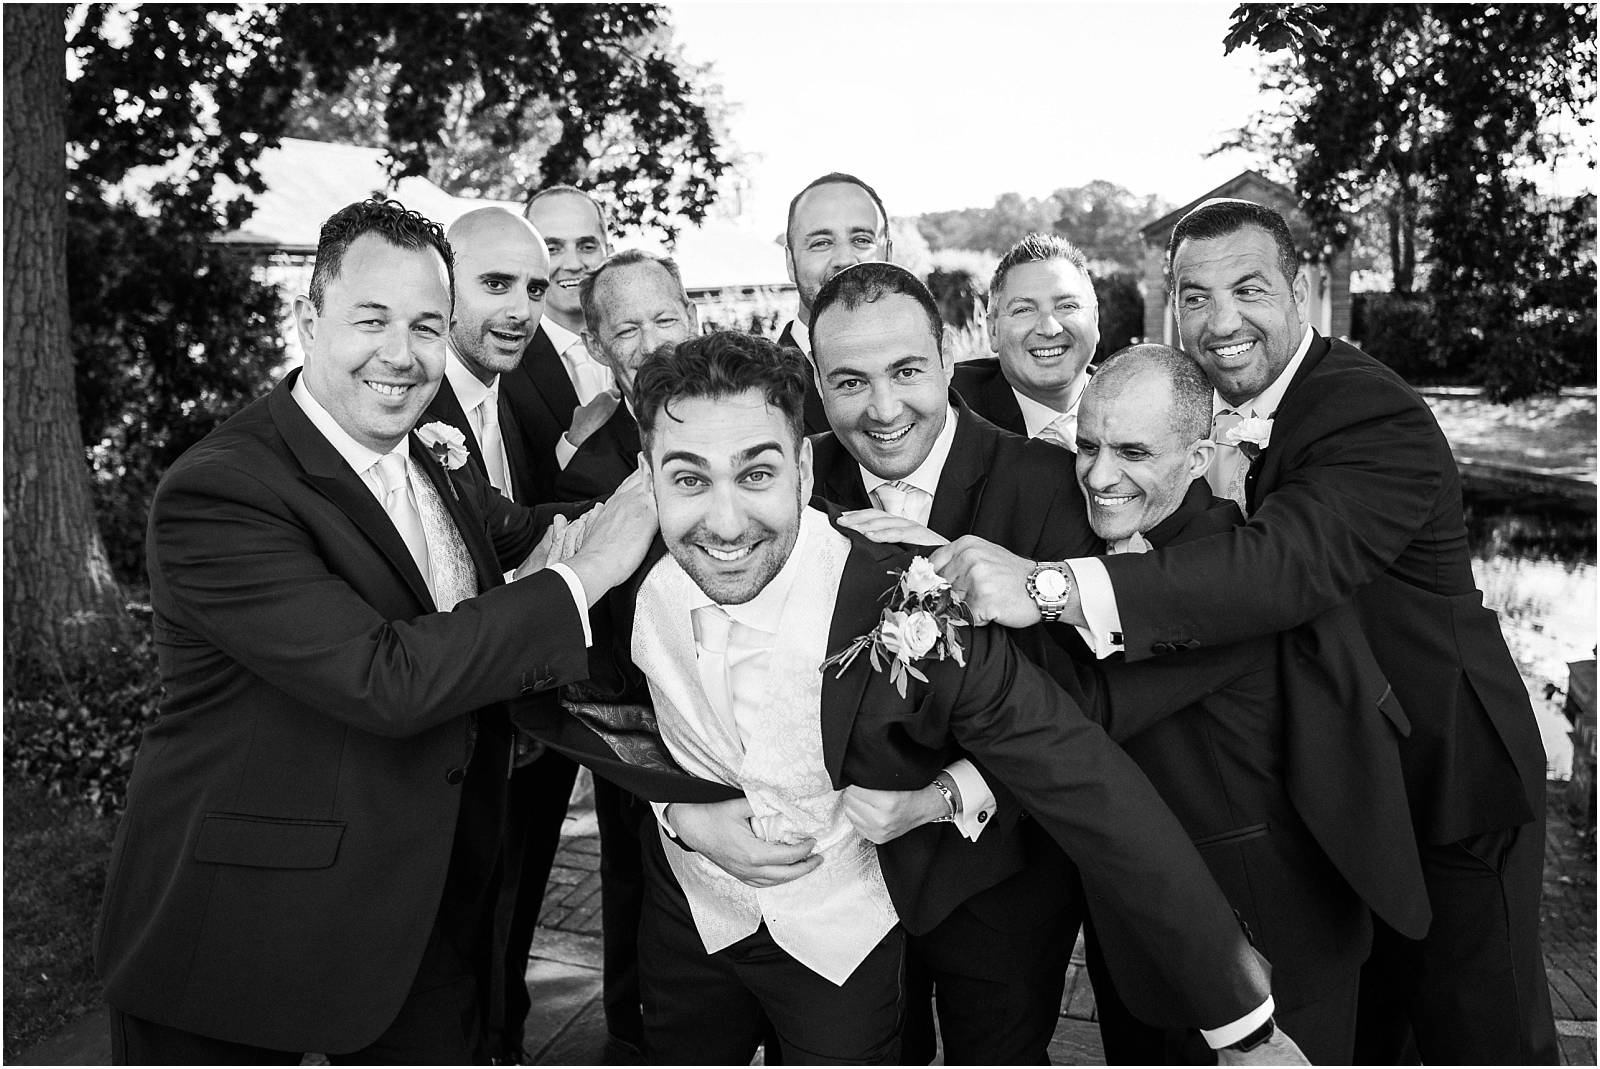 funny groom and groomsmen pics